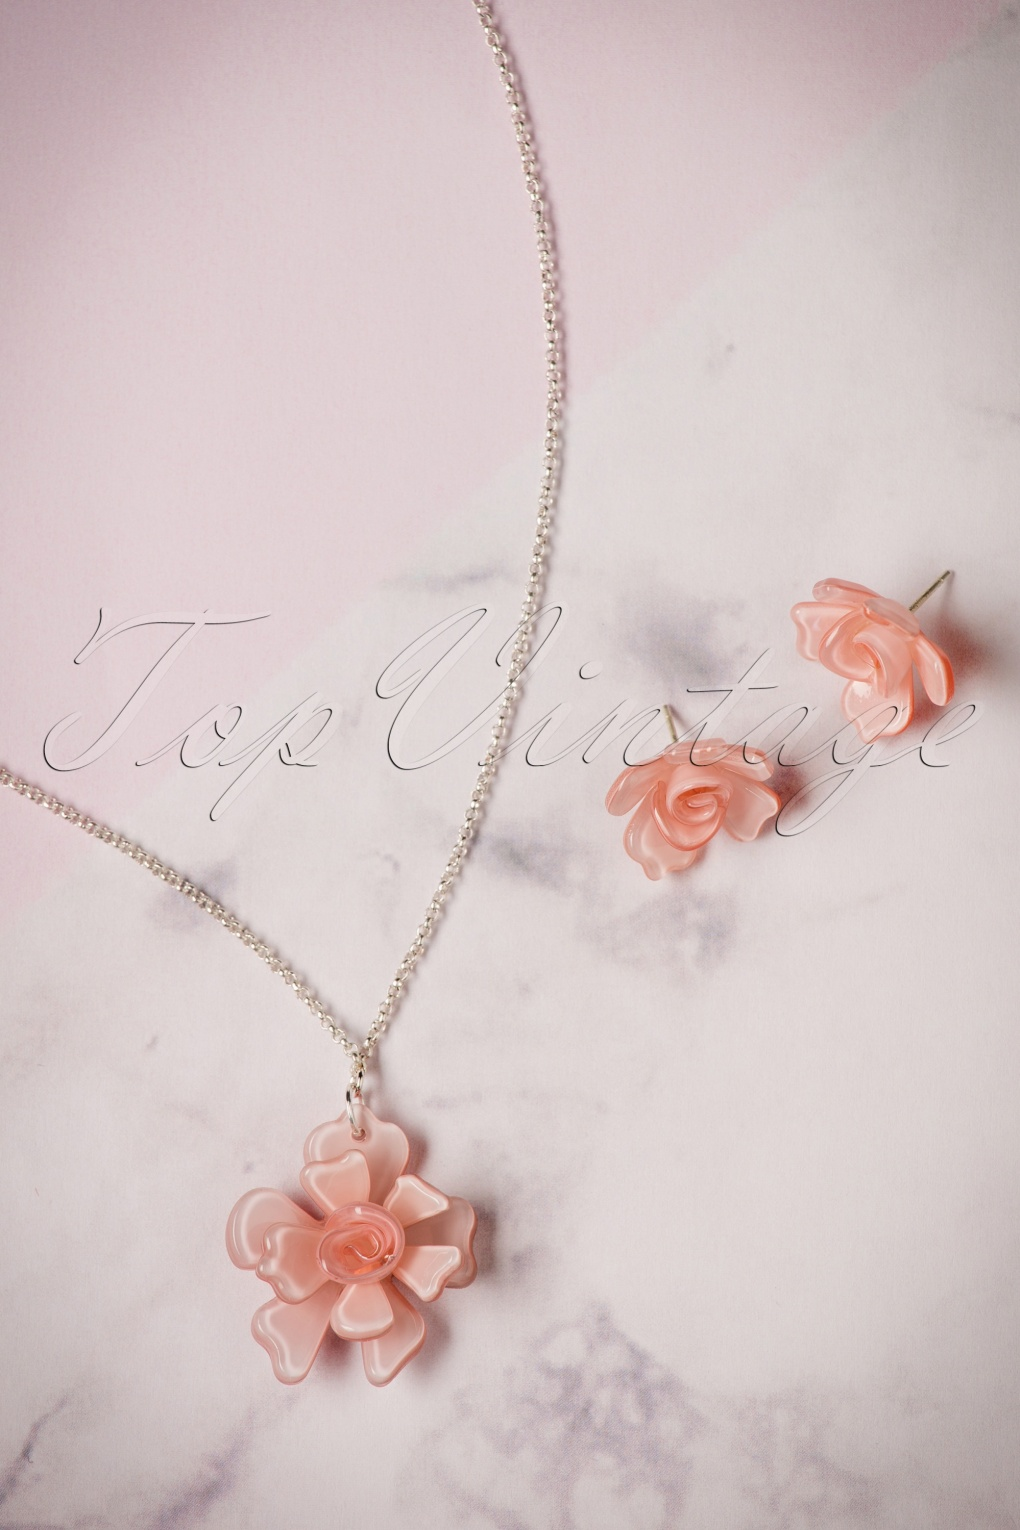 flower cute york zirconia clef cubic cz necklace products sterling kigmay new style jewelry silver